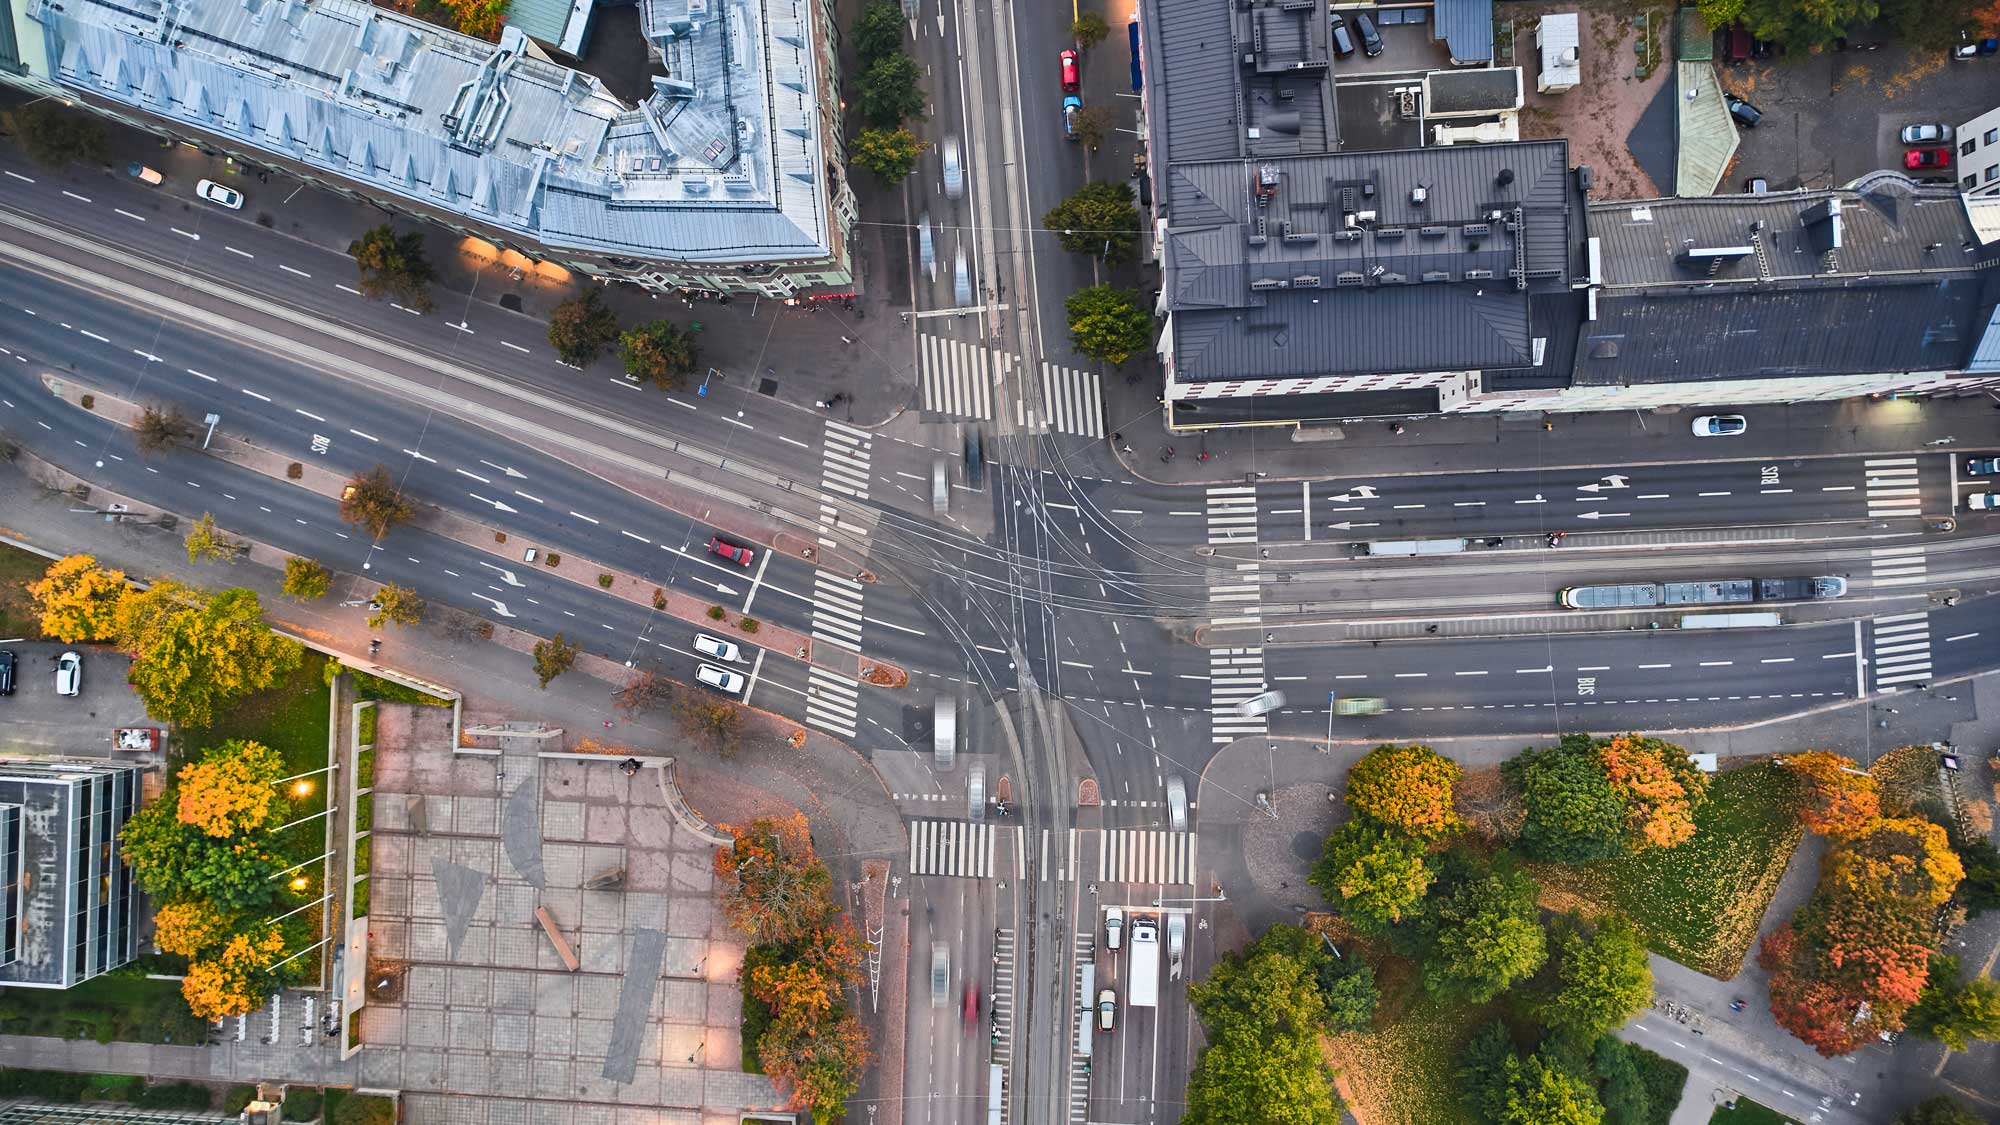 An aerial view of the intersection in Helsinki